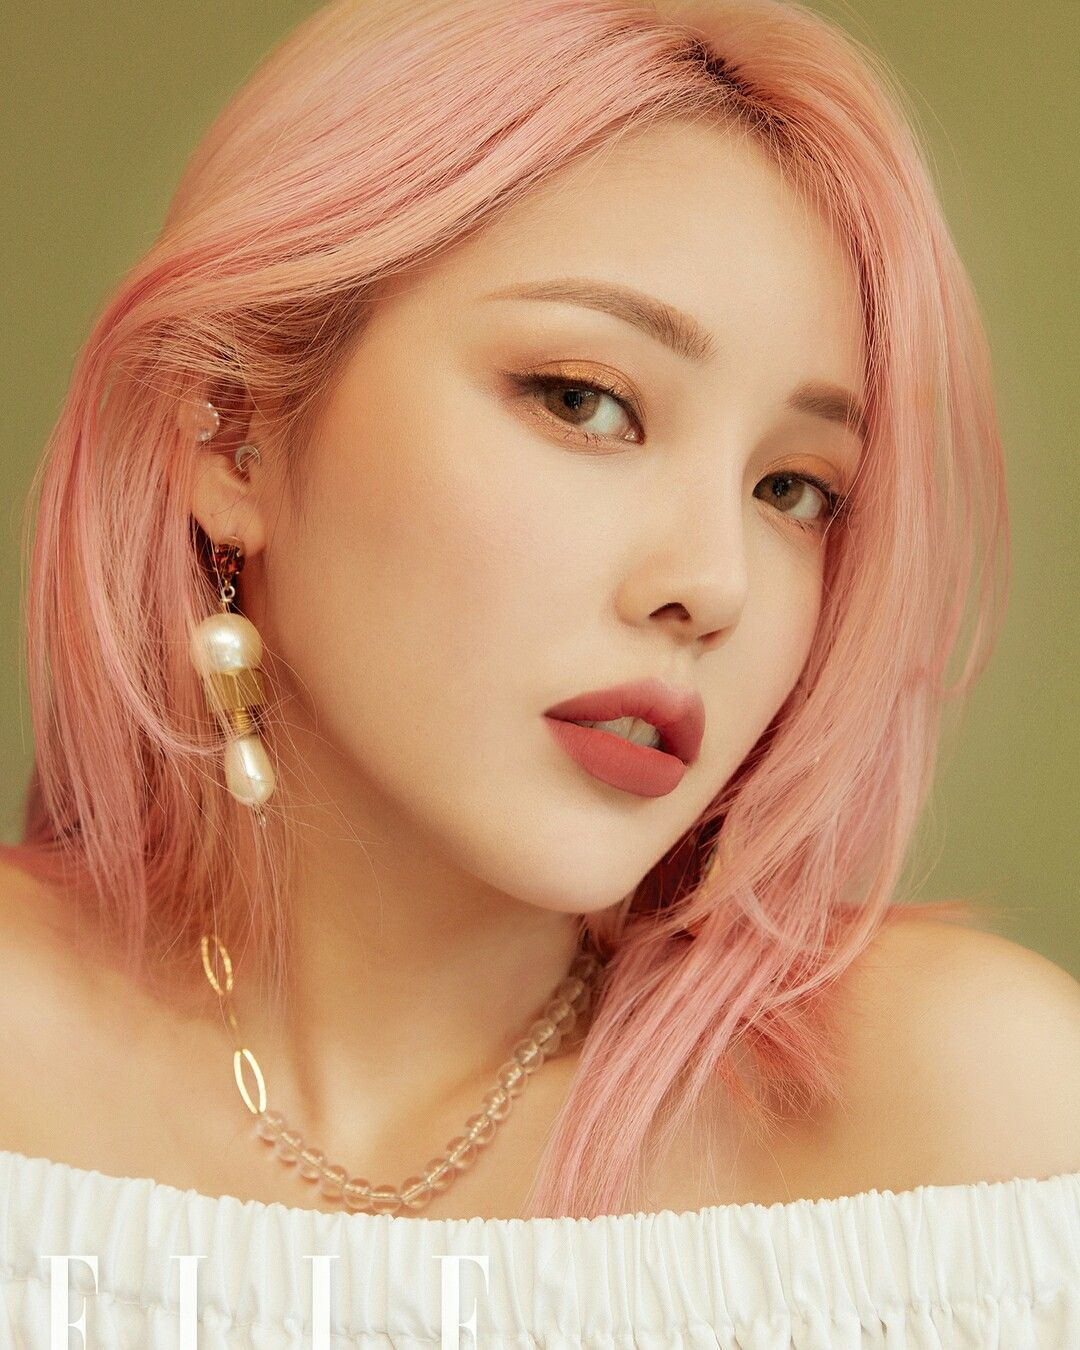 Take Care Of Your Skin With These Simple Steps Pony Effect Makeup Pony Makeup Korean Makeup Look